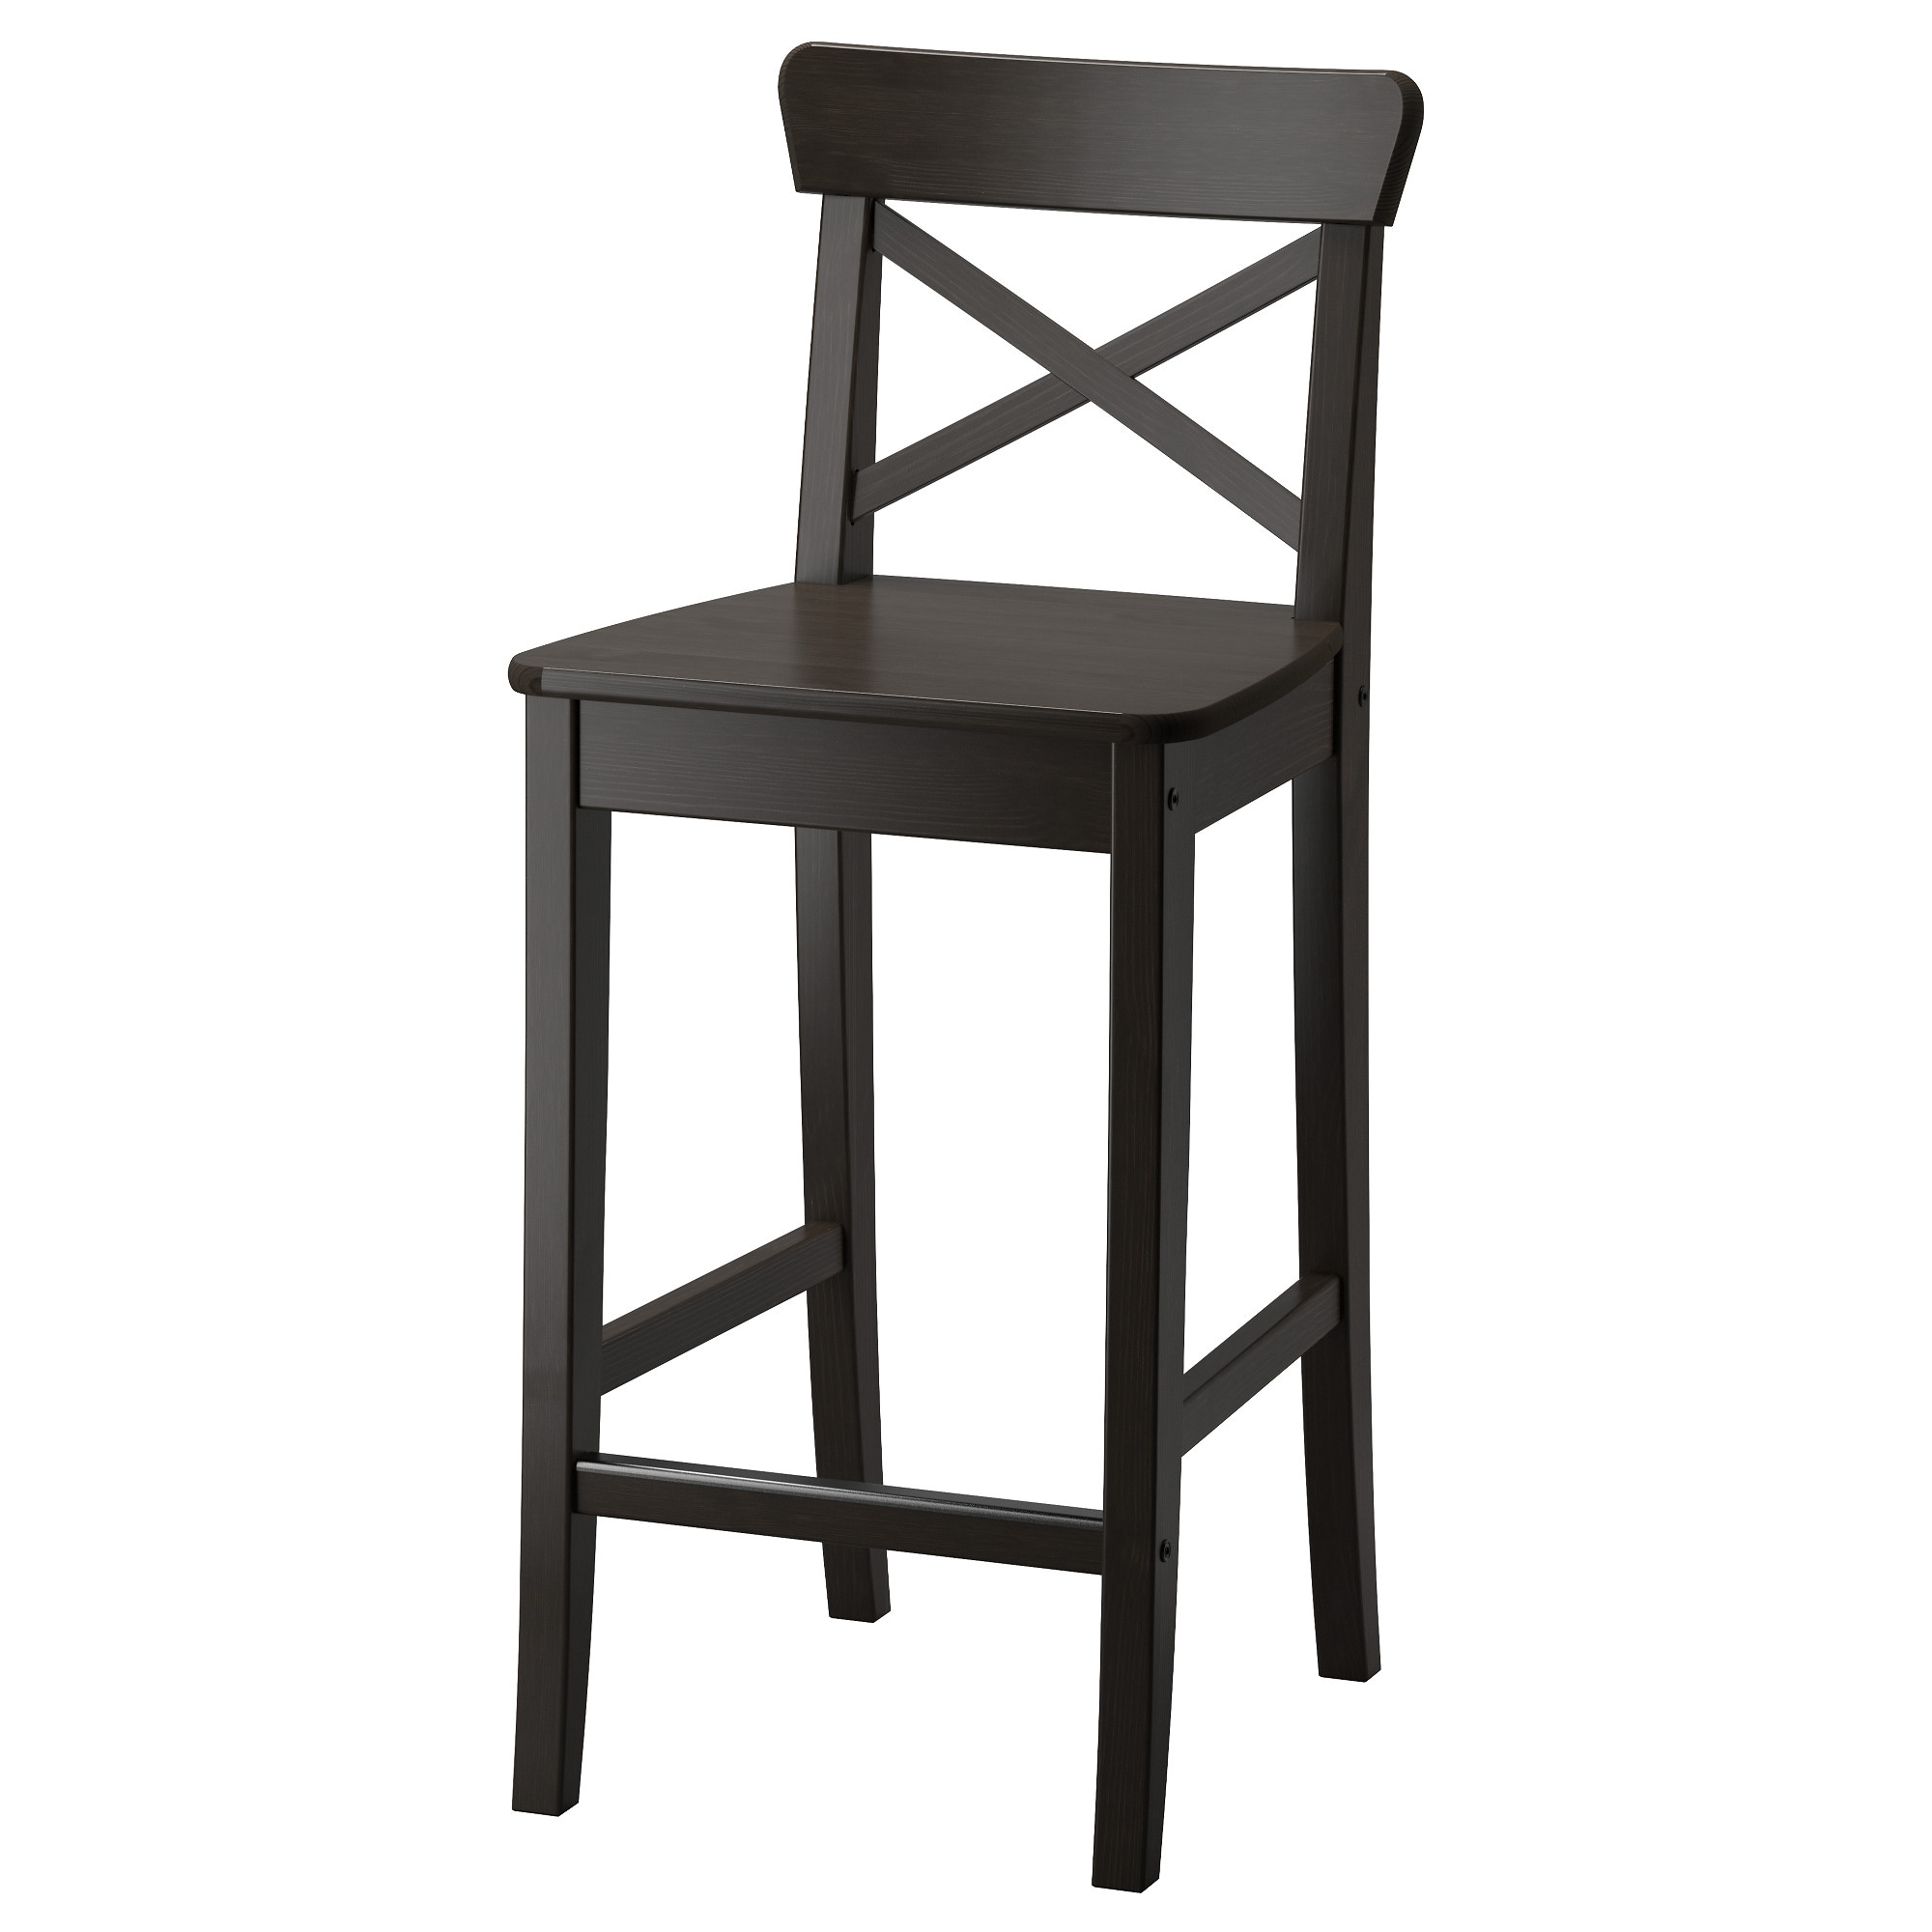 Ingolf Bar Stool With Backrest, Brownblack Tested For: 220 Lb Width: